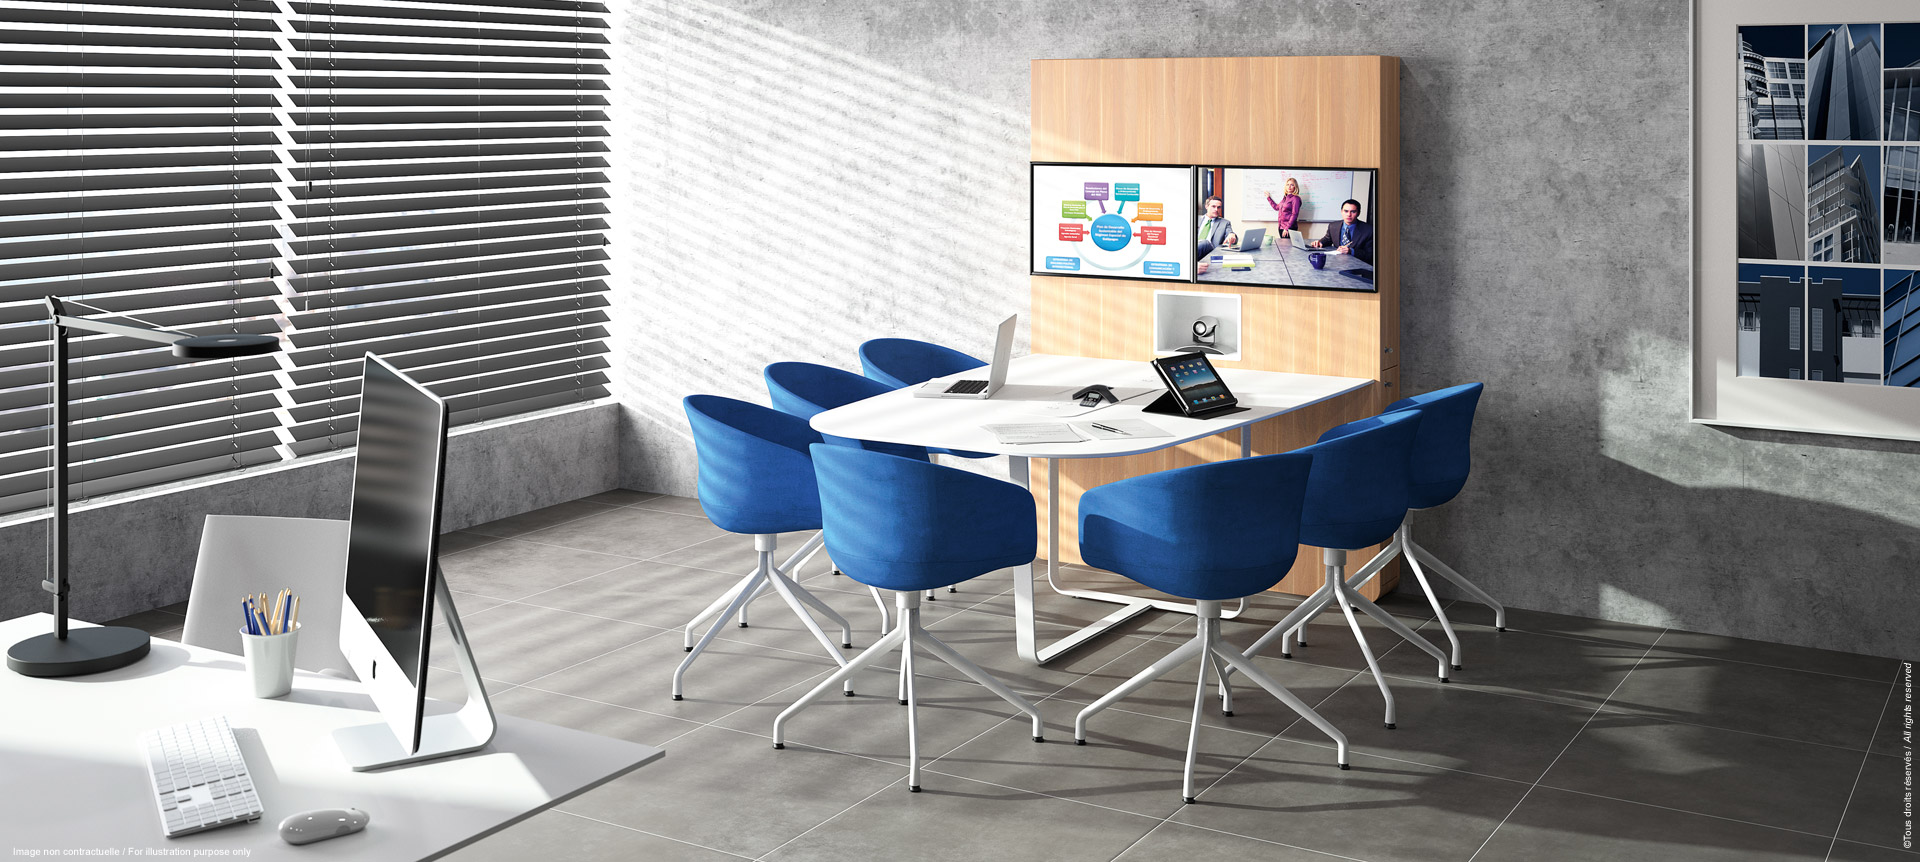 WEMEET CONFERENCE -Meeting furniture for coworking and videoconference